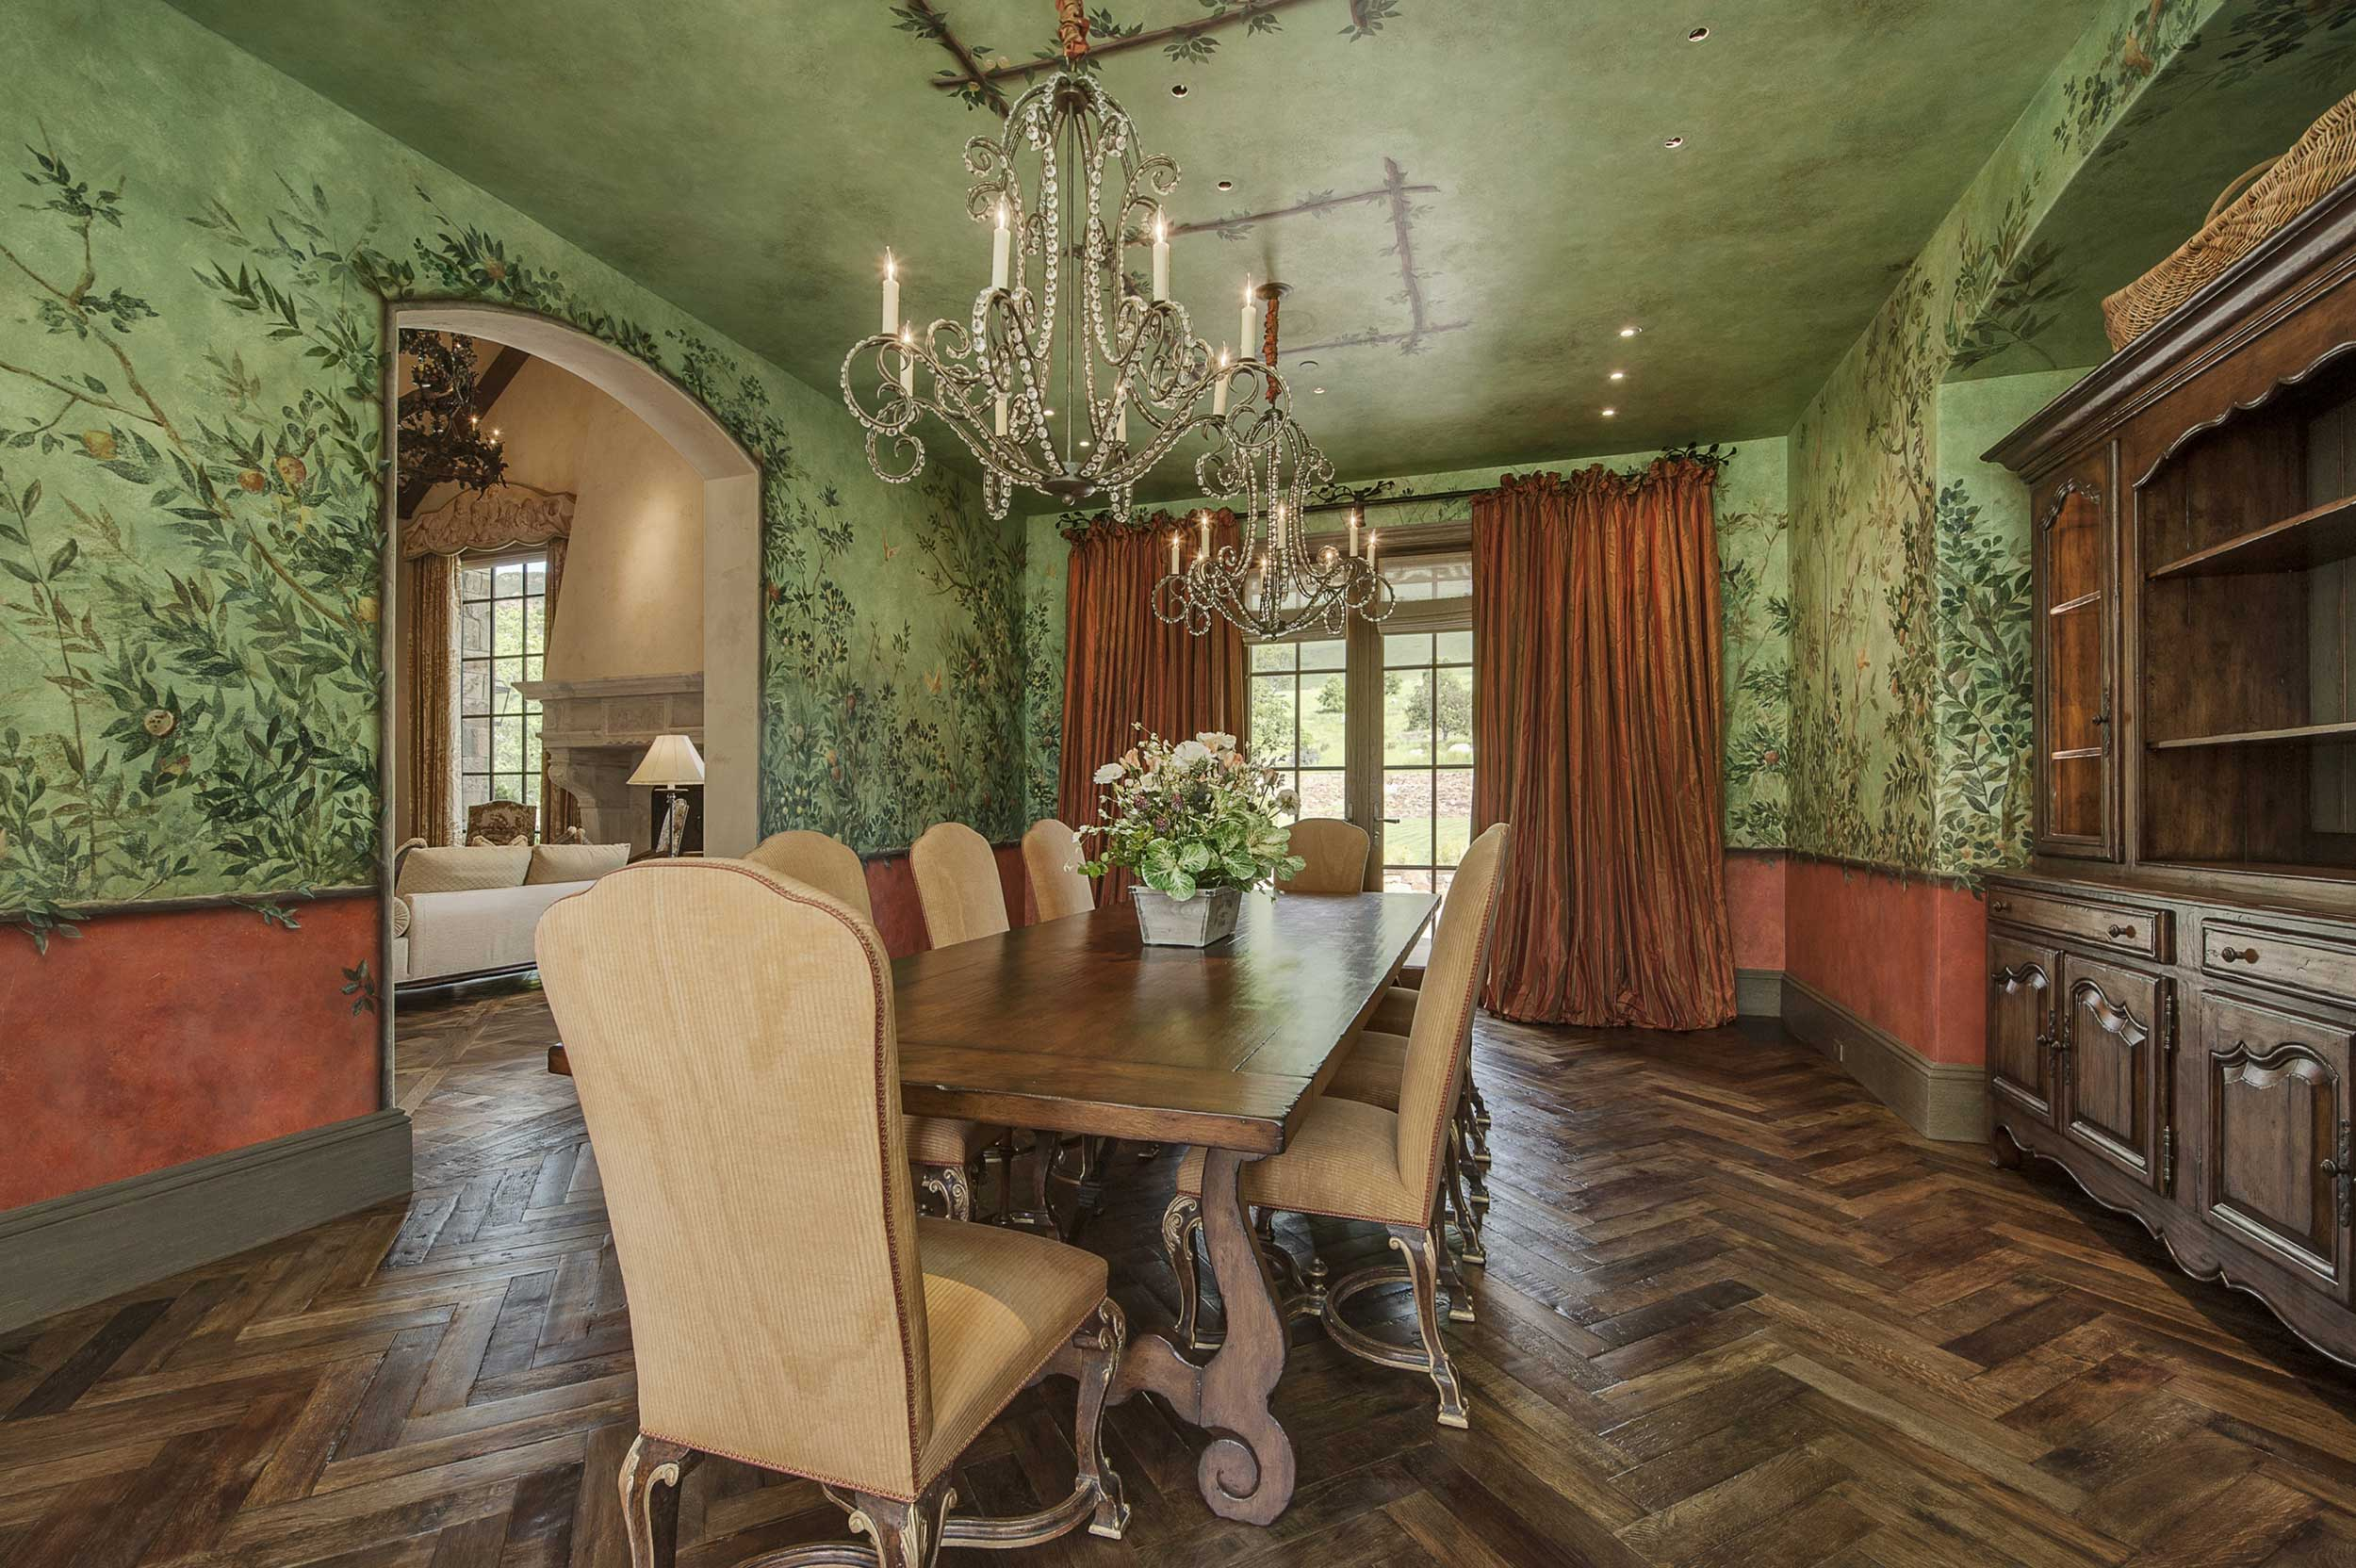 """This San Francisco home's dining room certainly embraces Pantone's concept of """"Greenery.""""  In addition to its fresh leaf-green hue, the room features a beautiful leaf mural, which combined with the natural timbered floors, evokes the atmosphere of an emerald forest."""